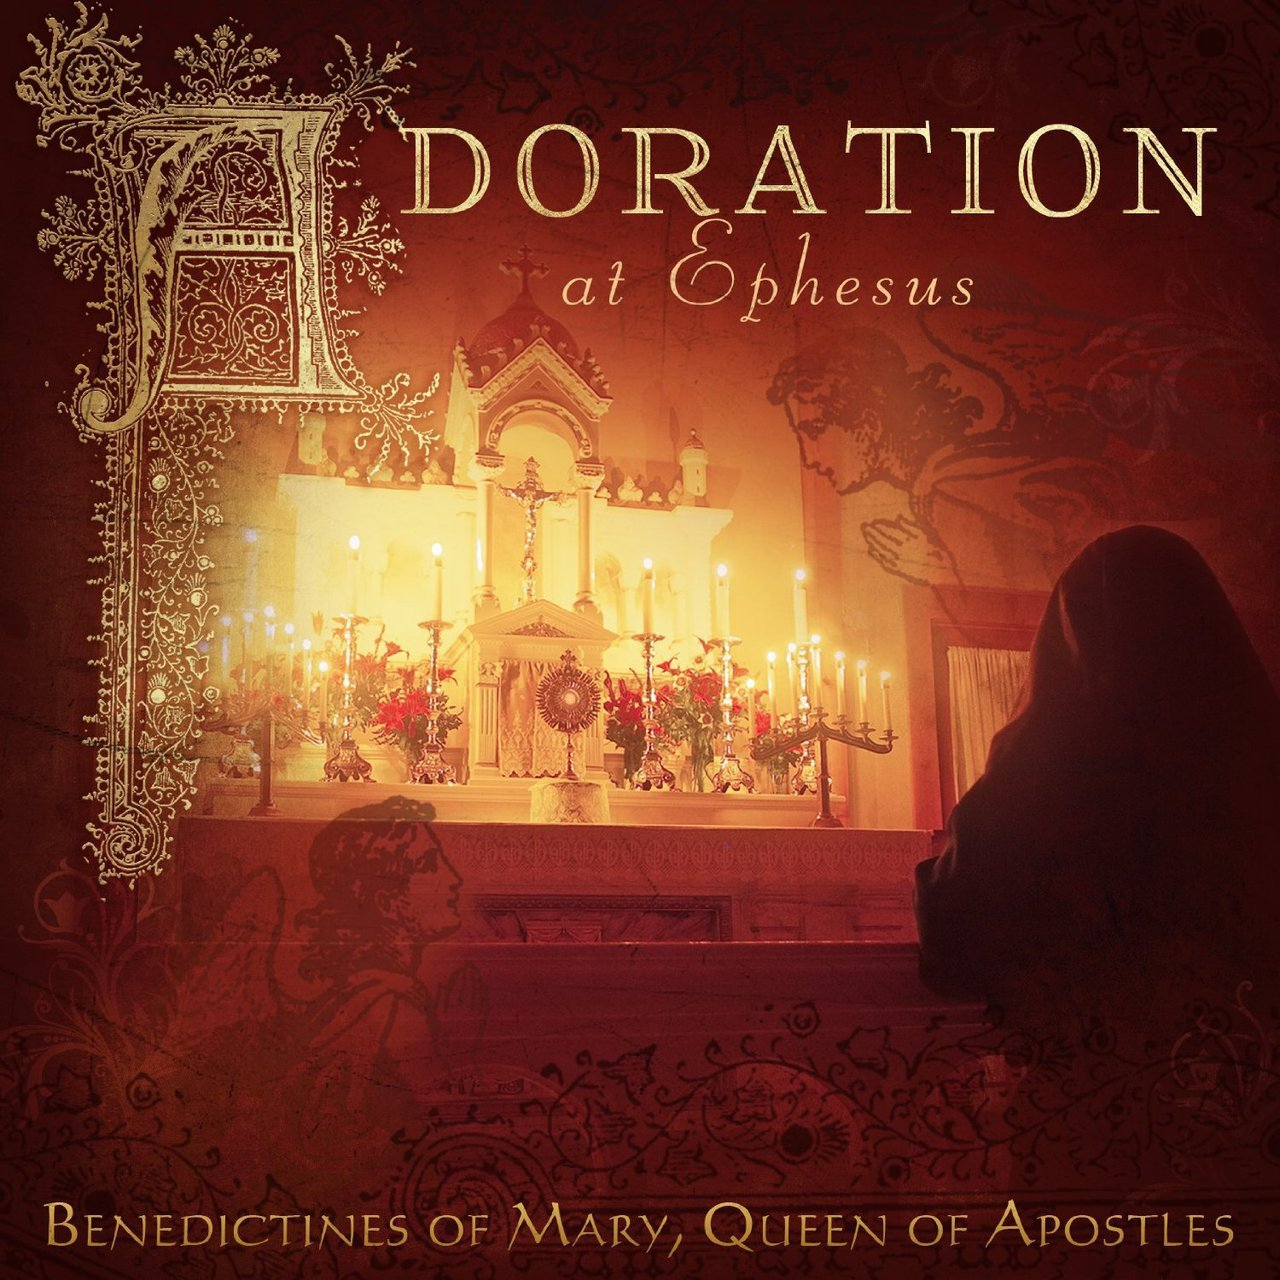 Adoration at ephesus by benedictines of mary  queen of apostles